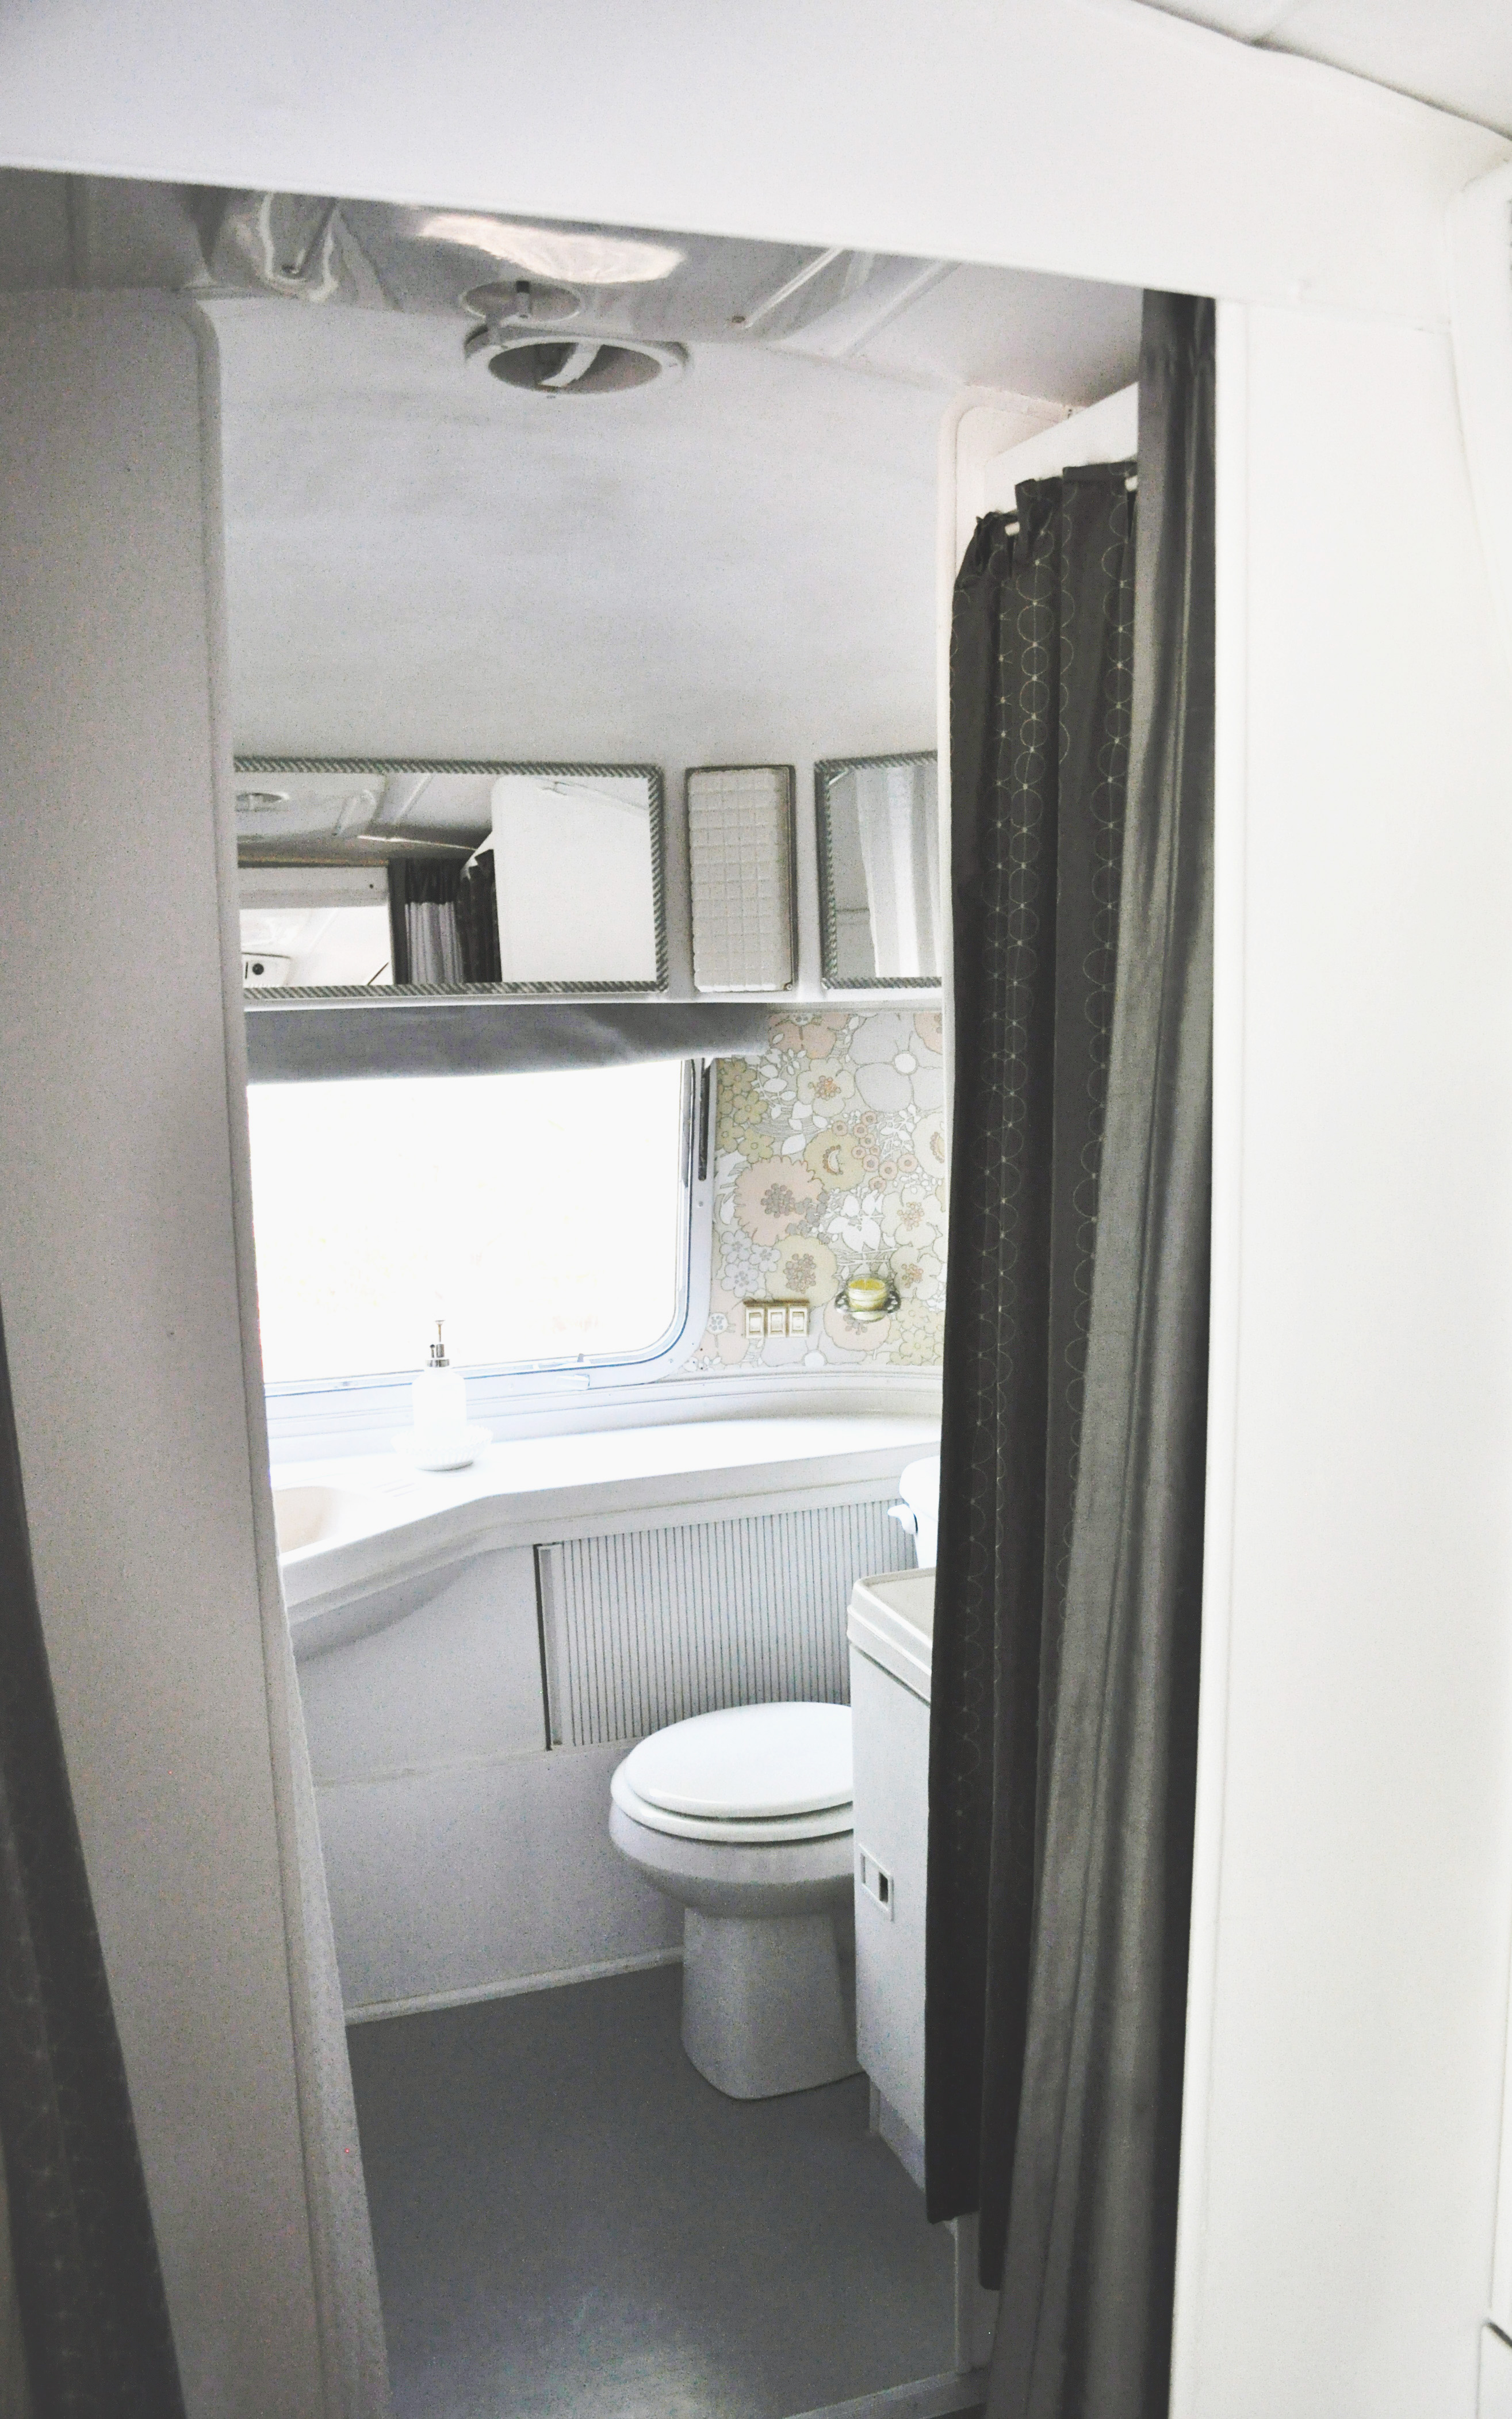 Ask Melanie: How Do I Install a Permanent Toilet in an Airstream ...